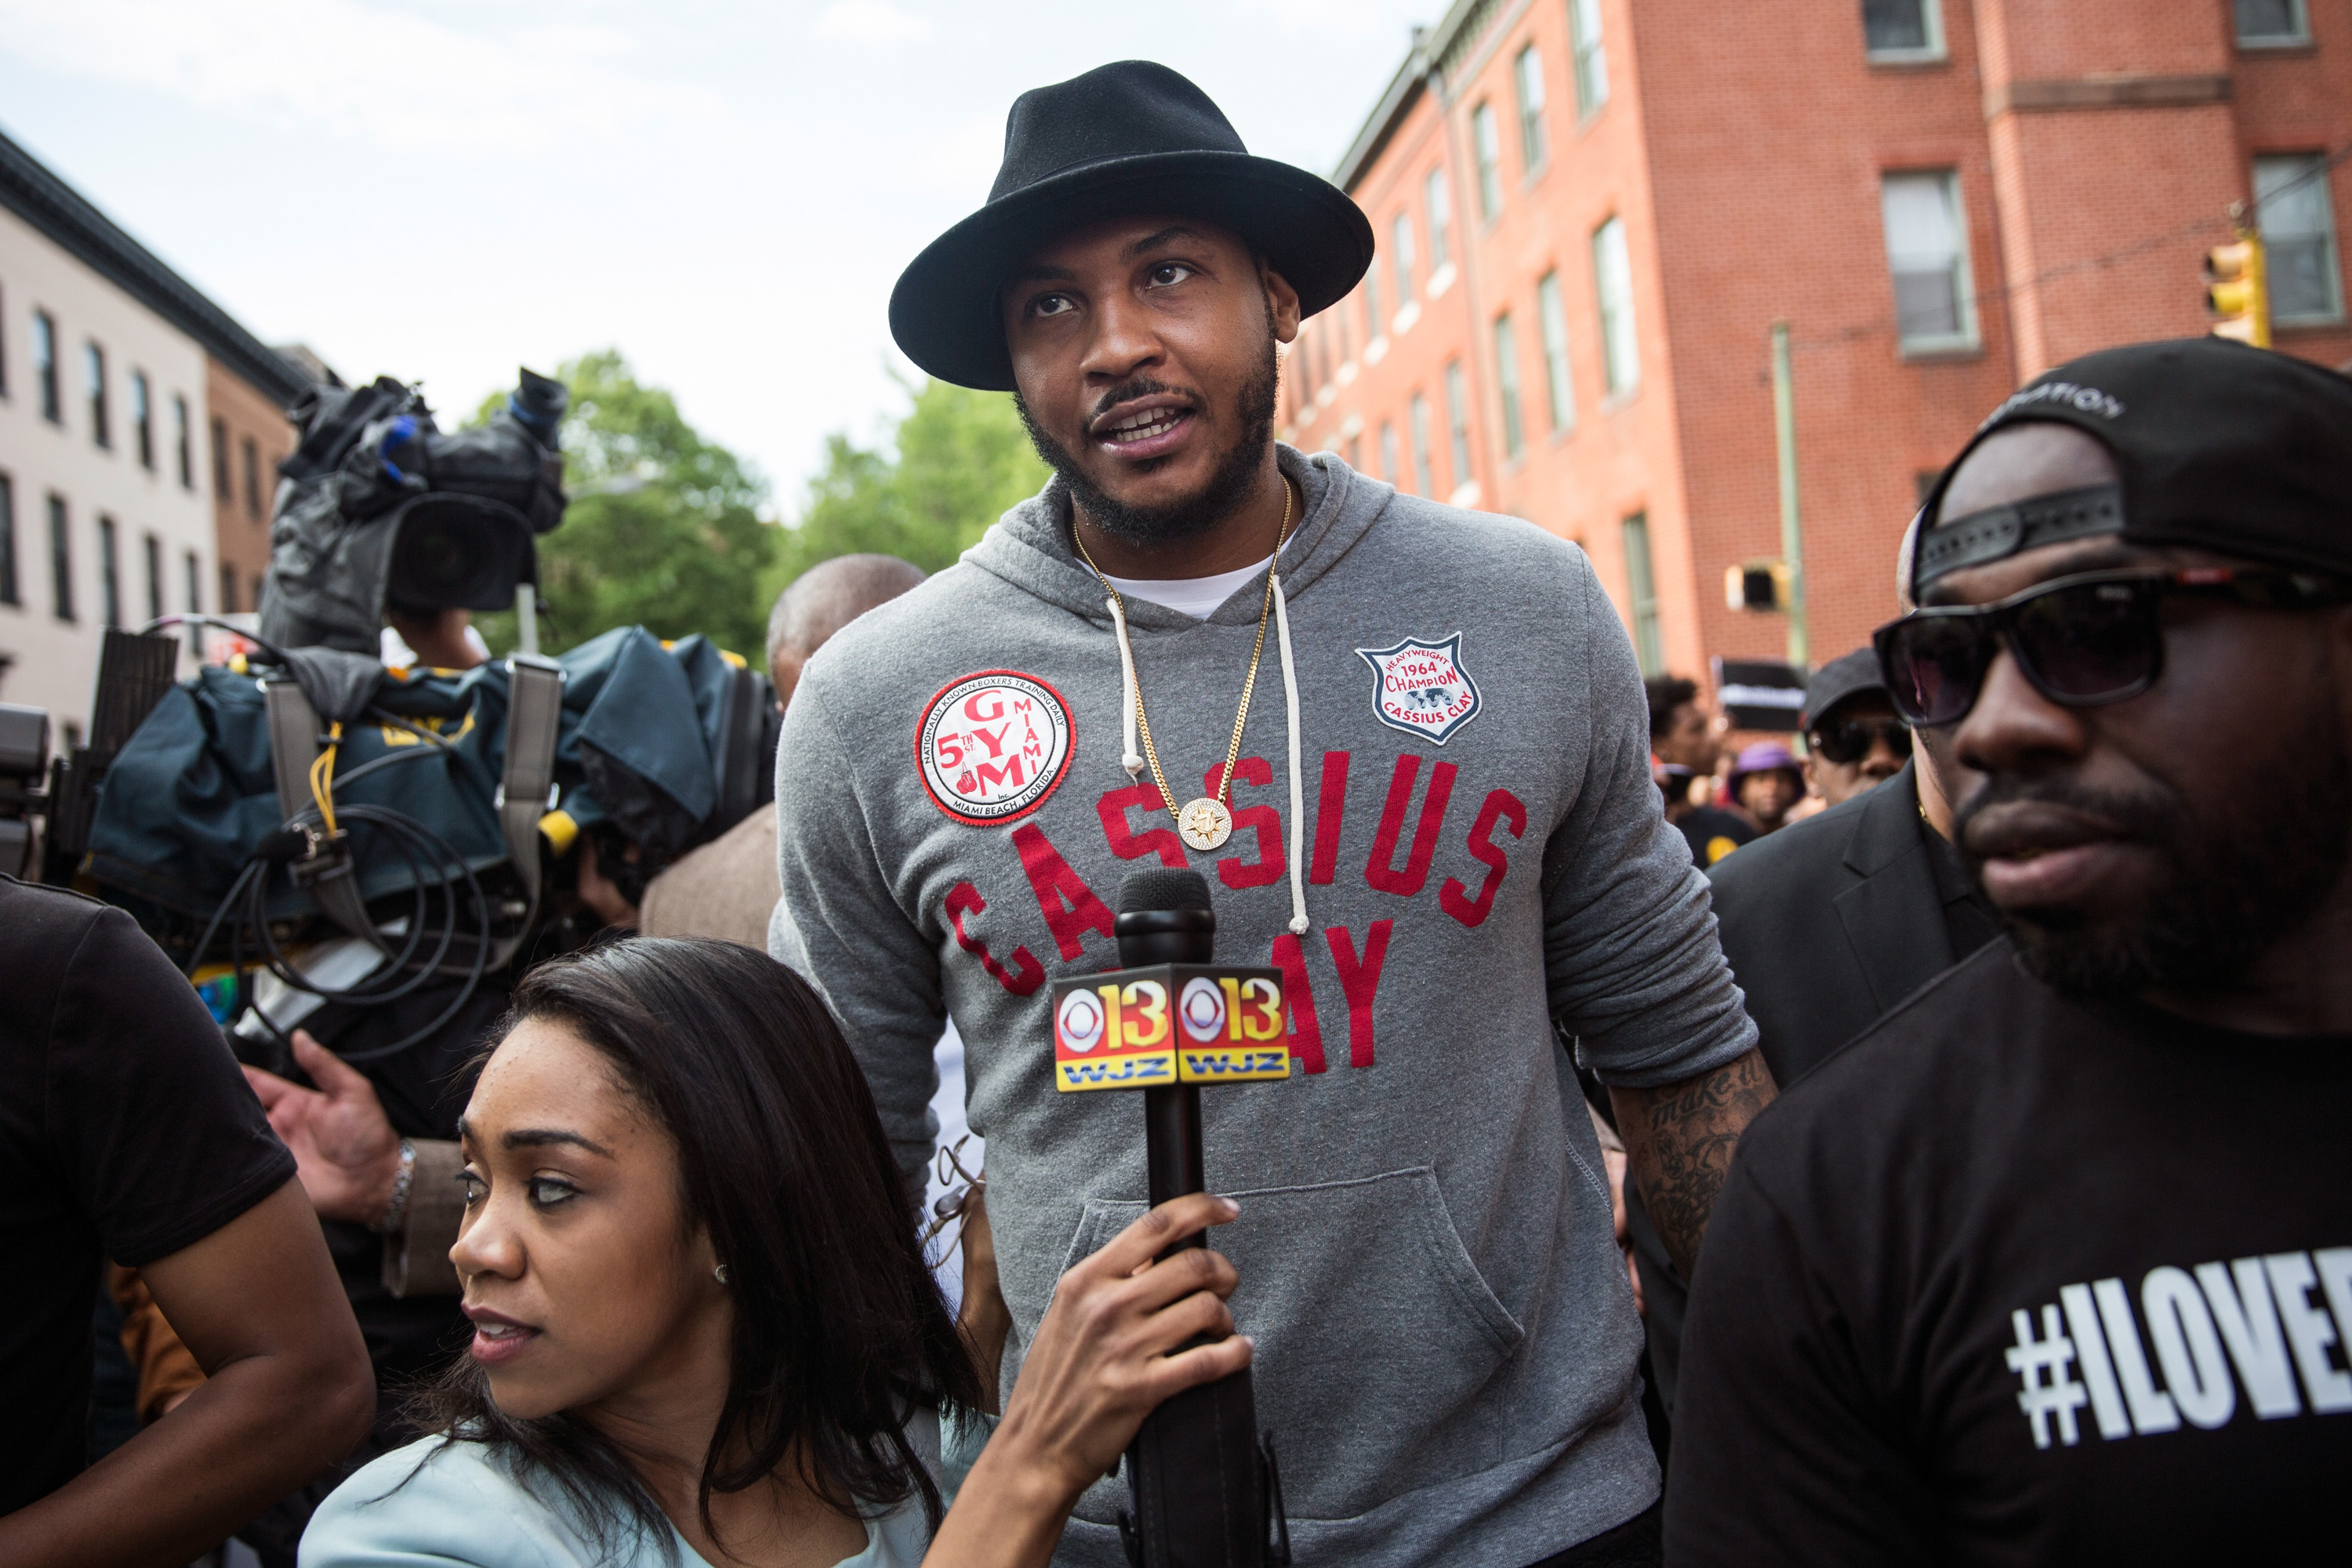 After Melo Trade, NYC Loses Both a Basketball Superstar and a High-Profile Community Leader